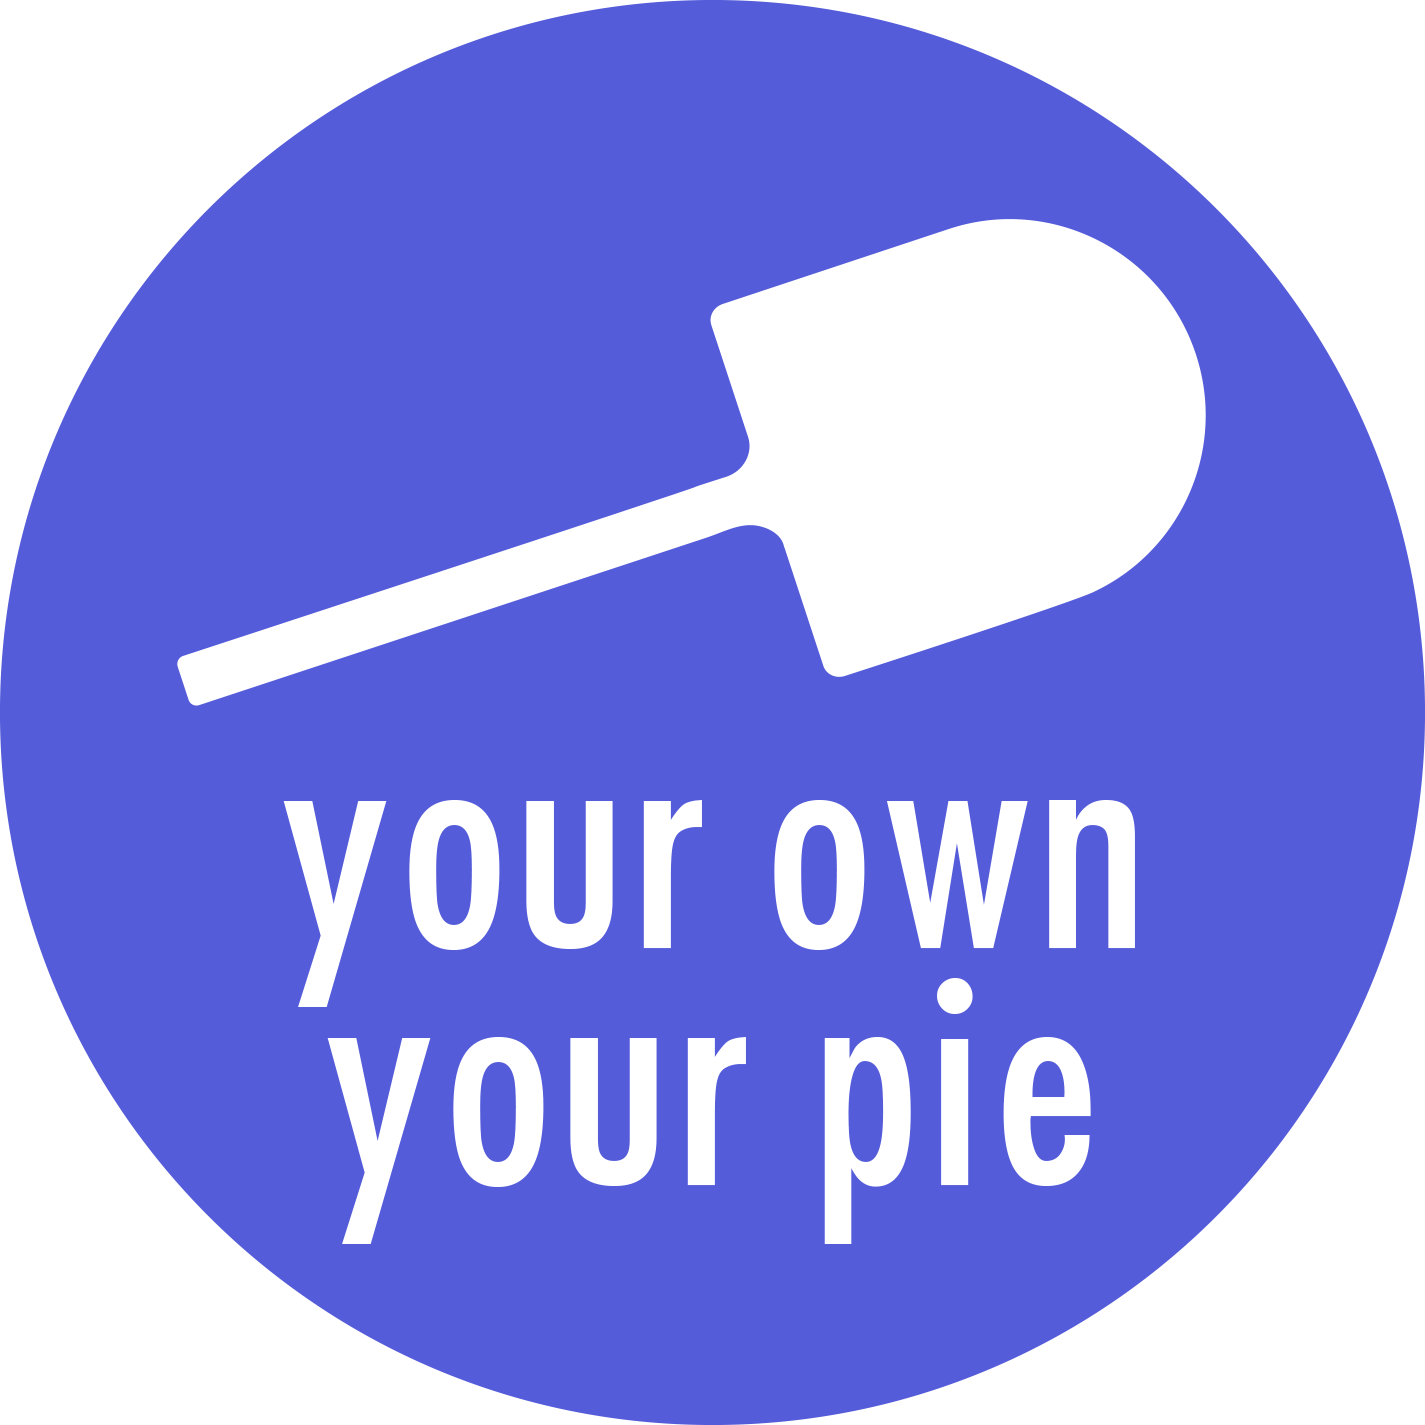 Pie shape png. Express your inner pizza